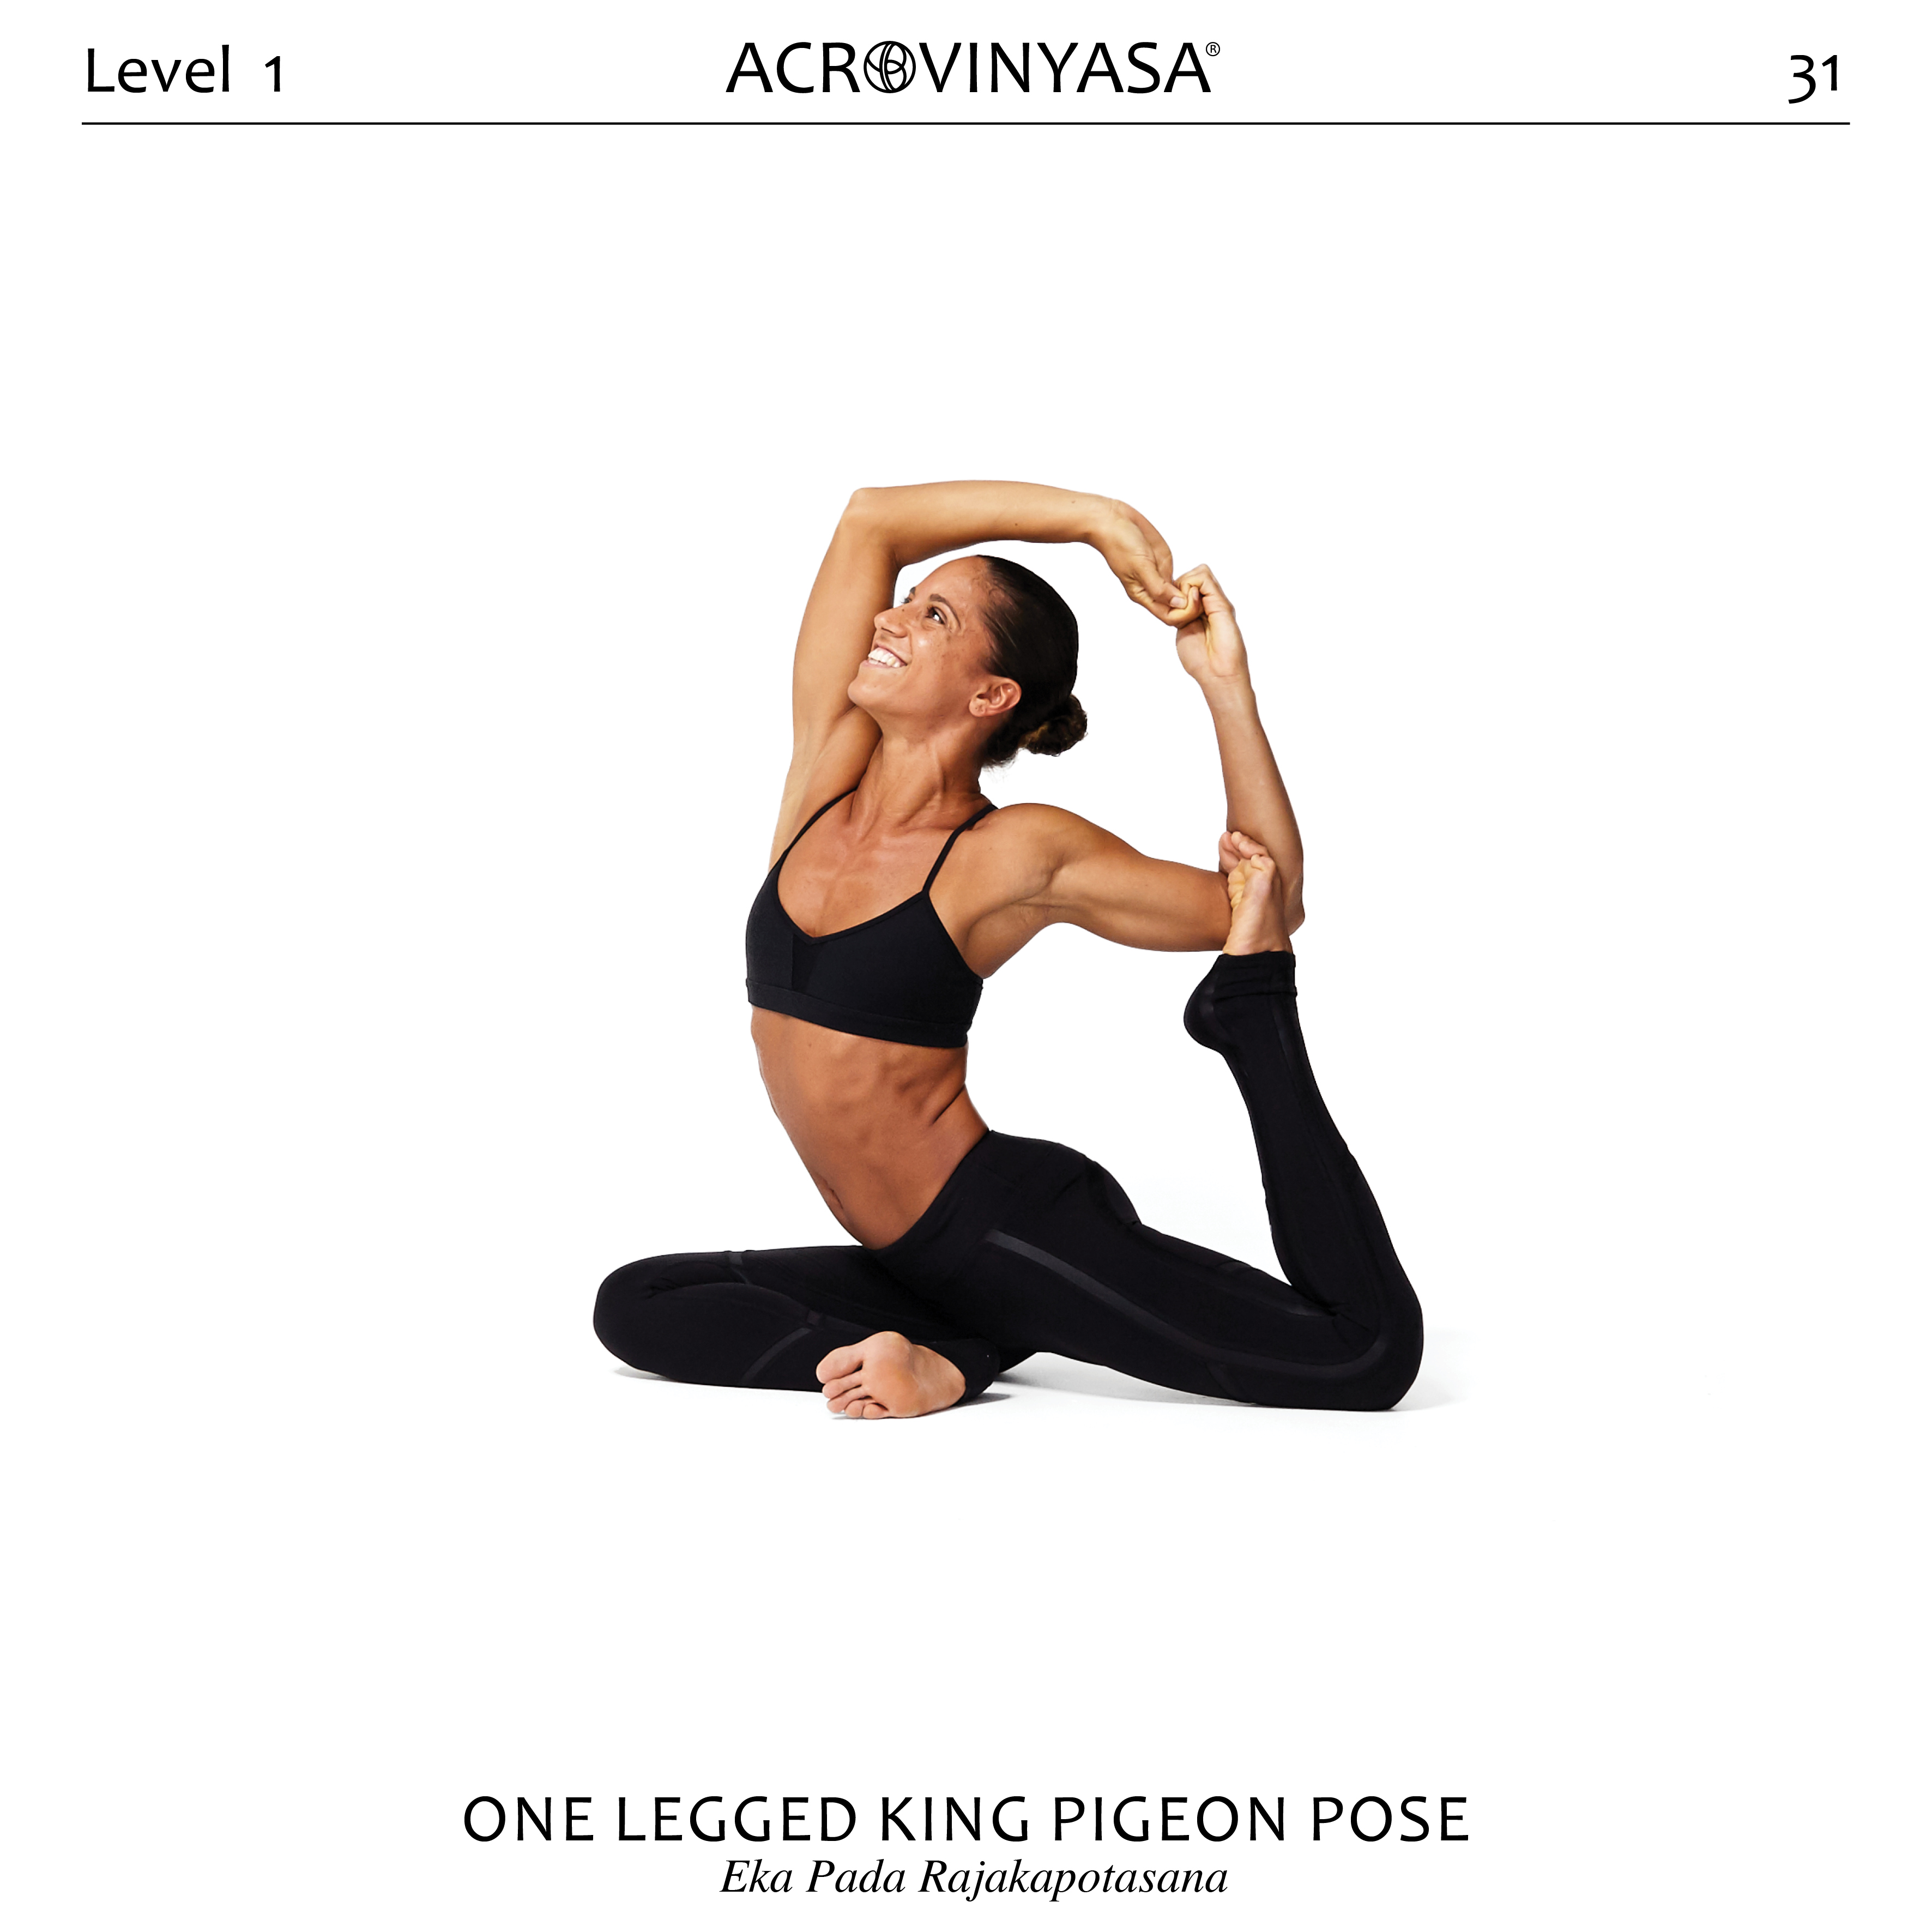 About Acrovinyasa